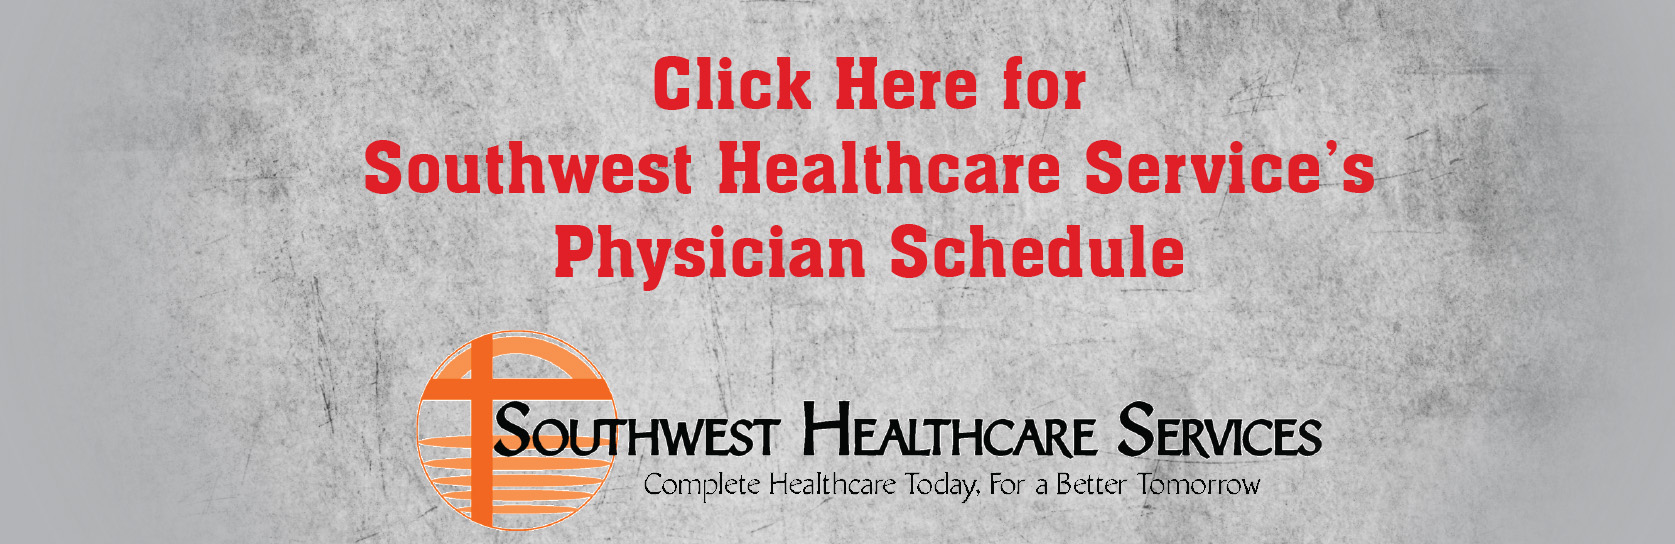 Physician Schedule